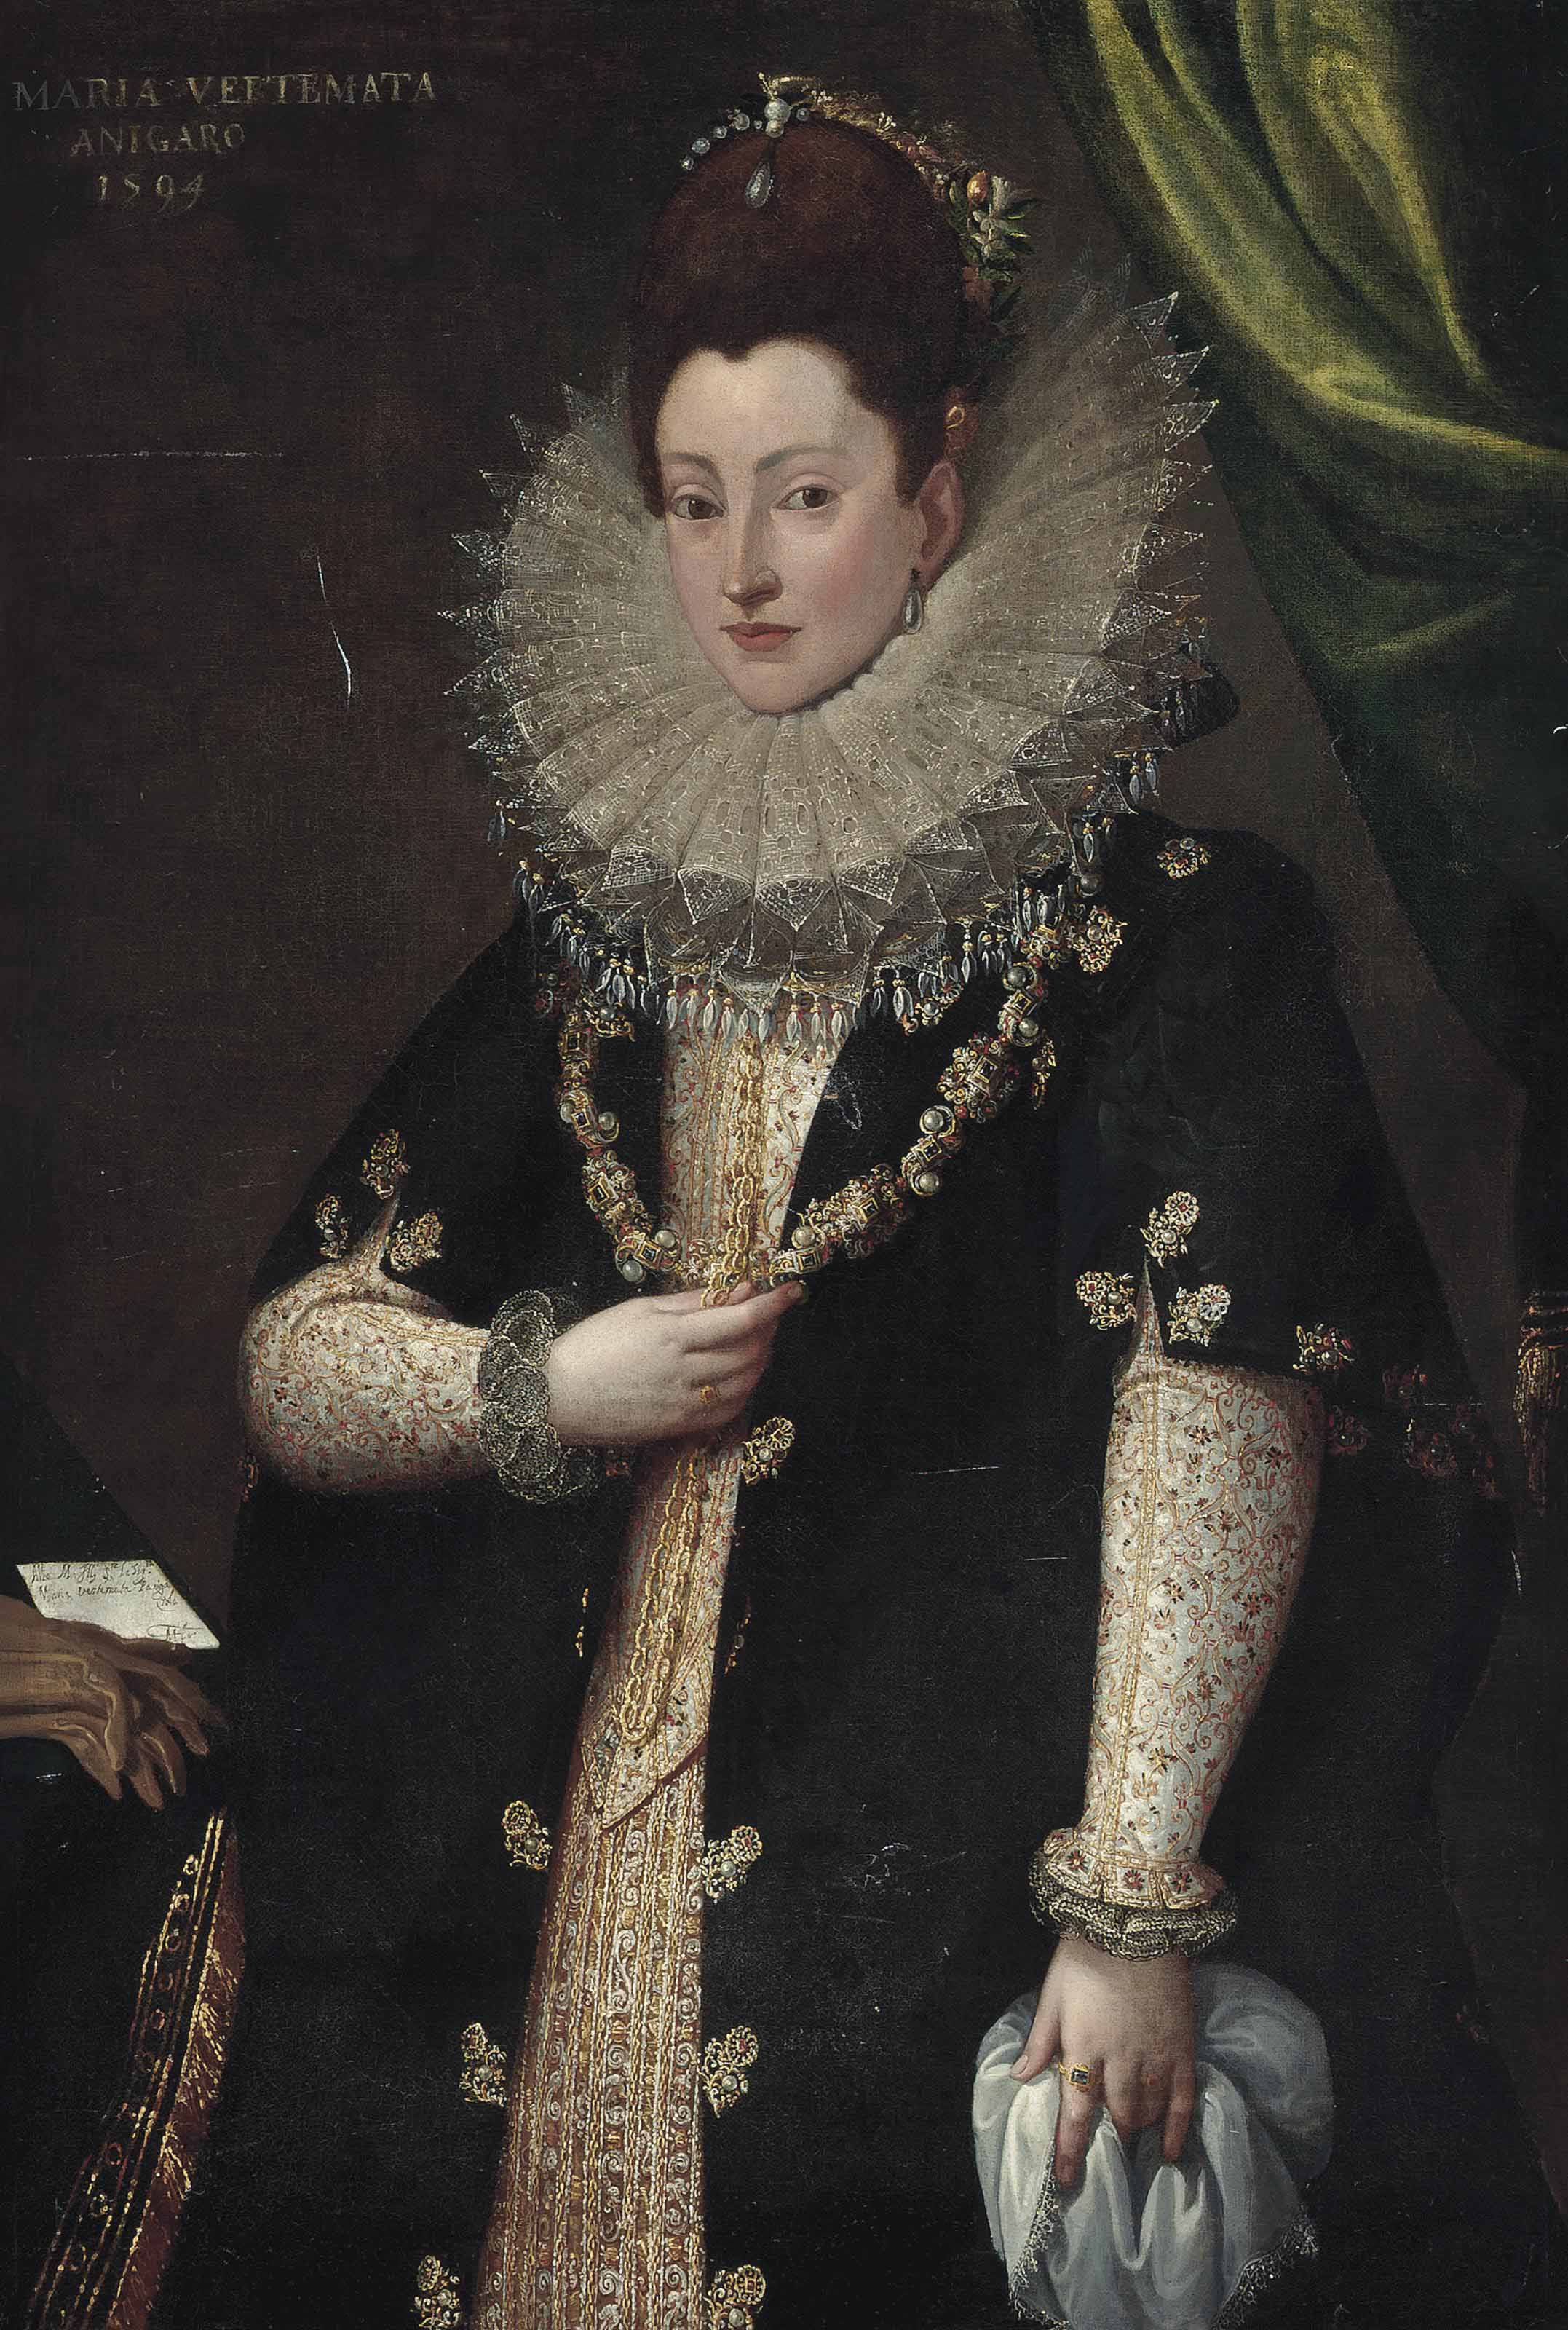 Portrait of Maria Vertemata, three-quarter length, in a richly embroidered oyster dress and bejewelled black dress, with a gold chain, lace cuffs, ruff and head-dress, a lace-trimmed napkin in her left hand, before a draped curtain